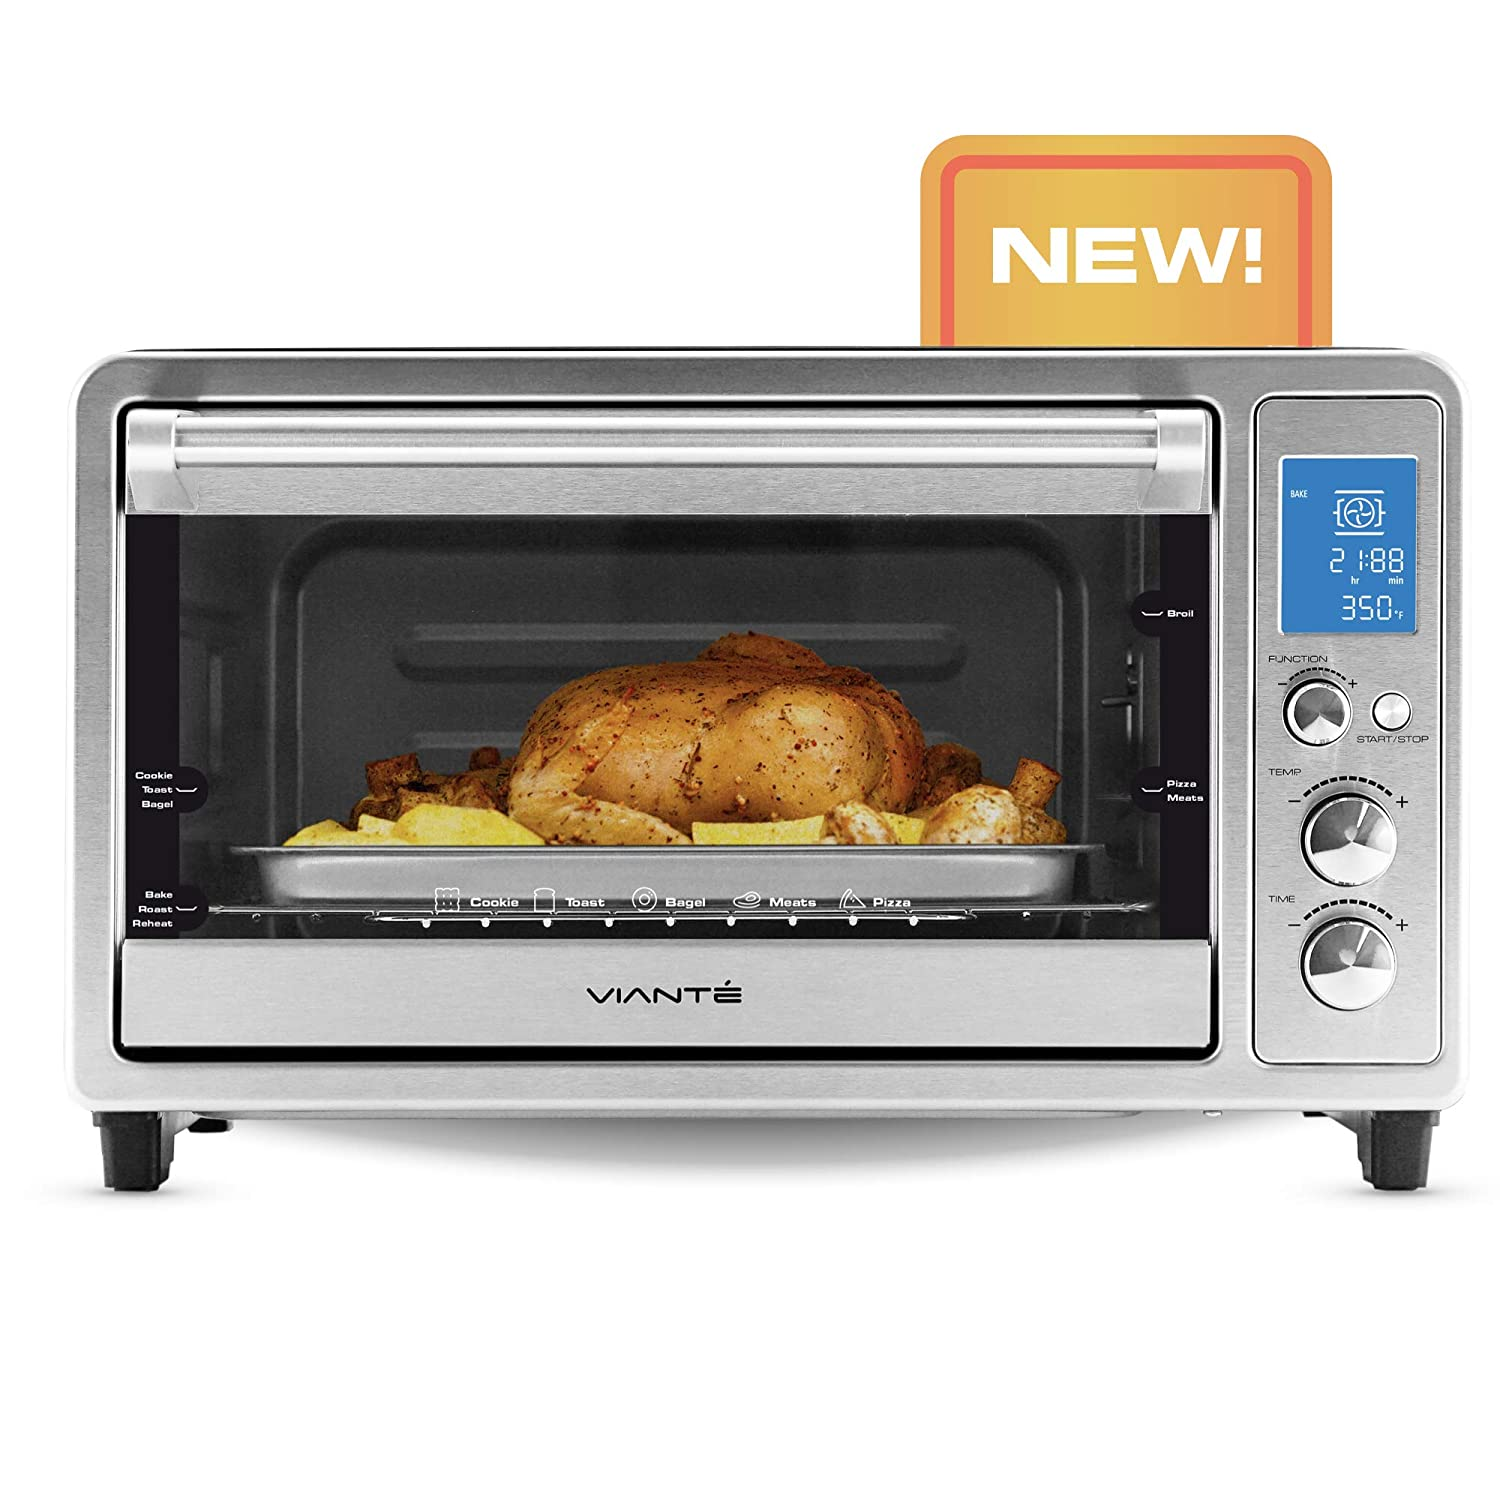 Viante Digital Convection Toaster Oven | Bakes, Broils, Toasts, Defrosts, Cooks Pizza, Bakes Cookies, Keeps Food Warm | Rottisserie Feature | Brushes Stainless Steel Body | Digital Control and LCD Screen